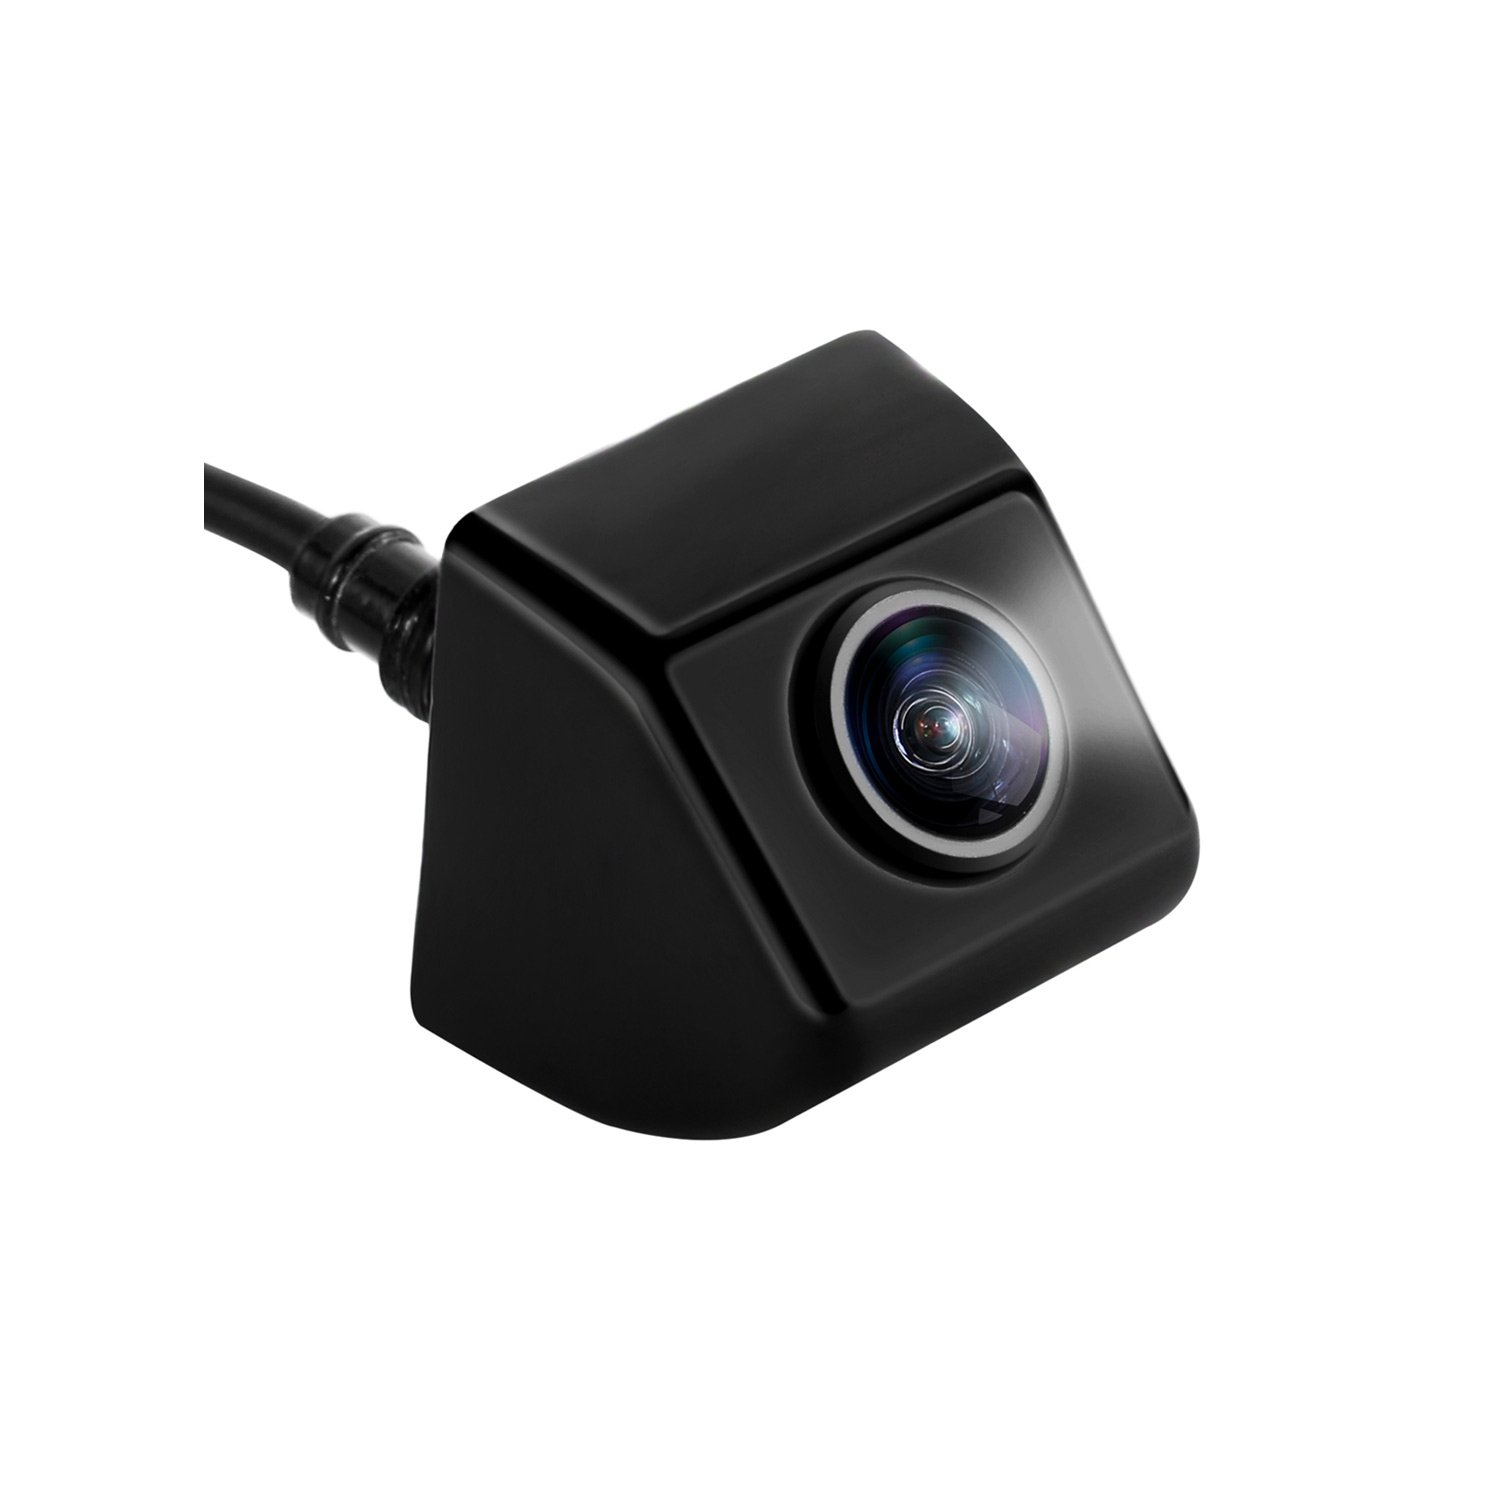 LeeKooLuu Backup Camera for Car/RV/Truck 150 Degree Viewing Angle with Intelligent Button Switch for Rear/Side/Front Facing View ON/Off Guide Lines Reverse/Continuous Use IP68 Waterproof Night Vision